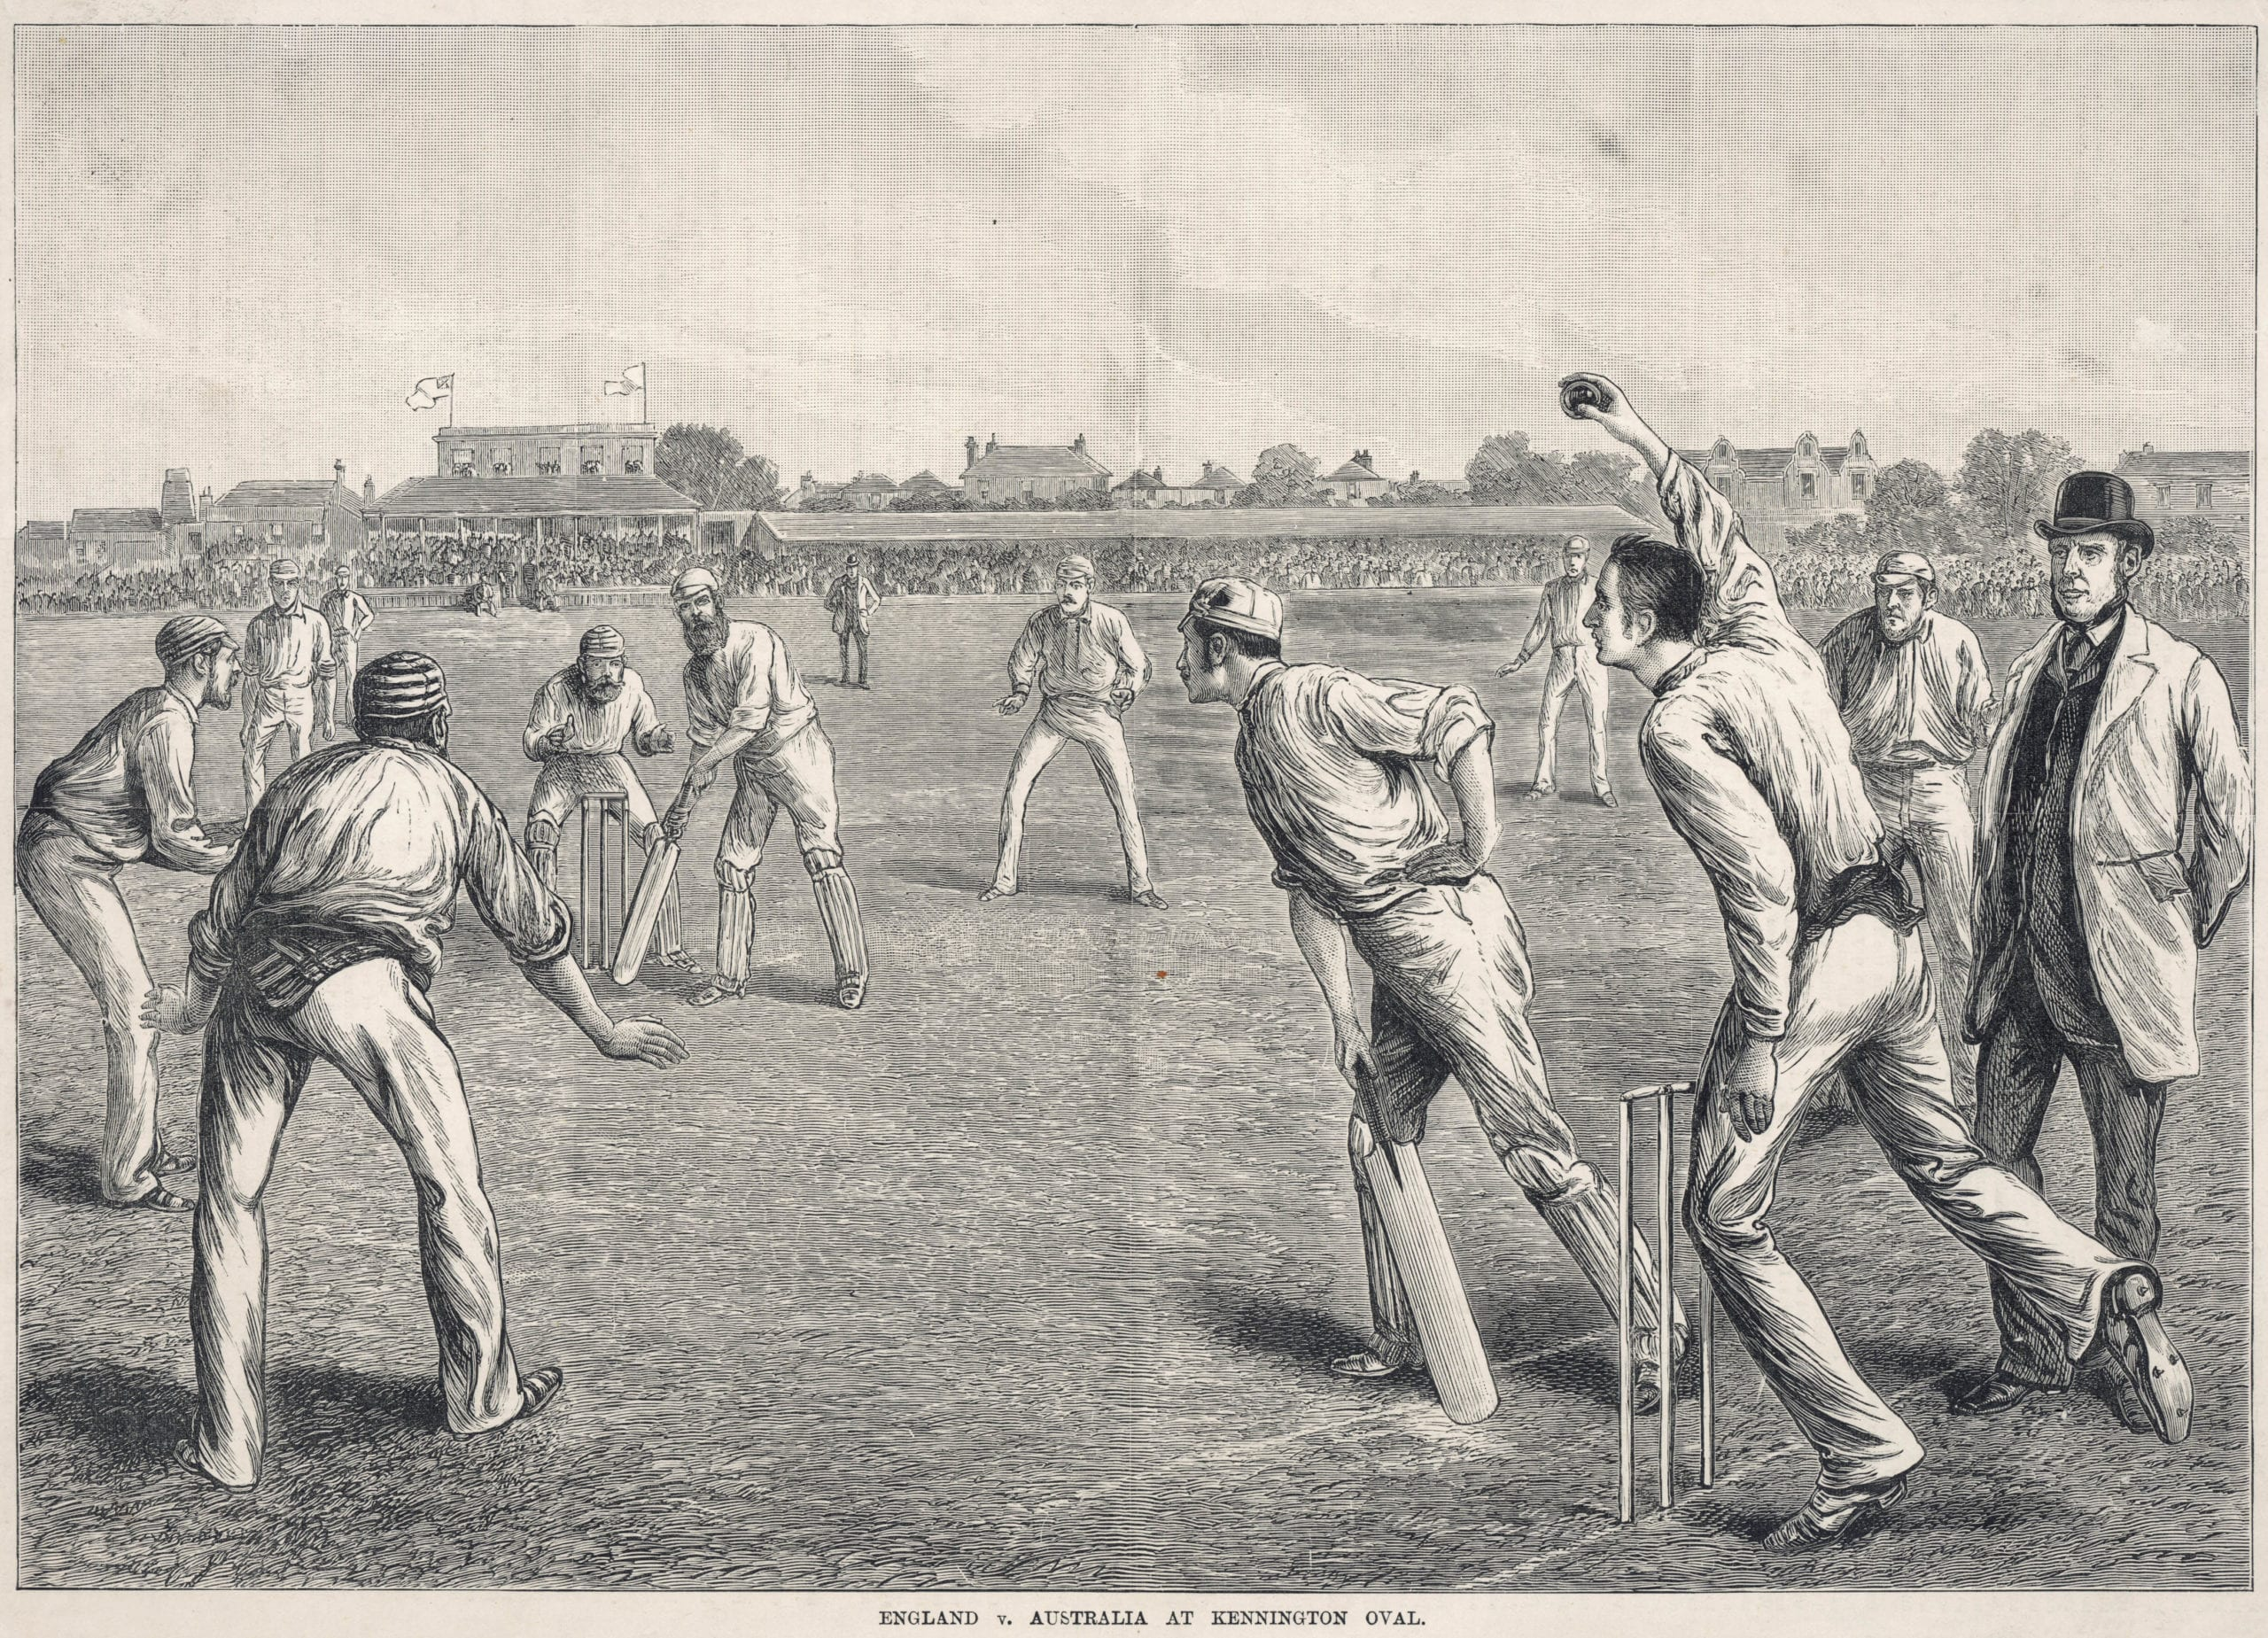 England V Australia cricket match. Date: late 19th century